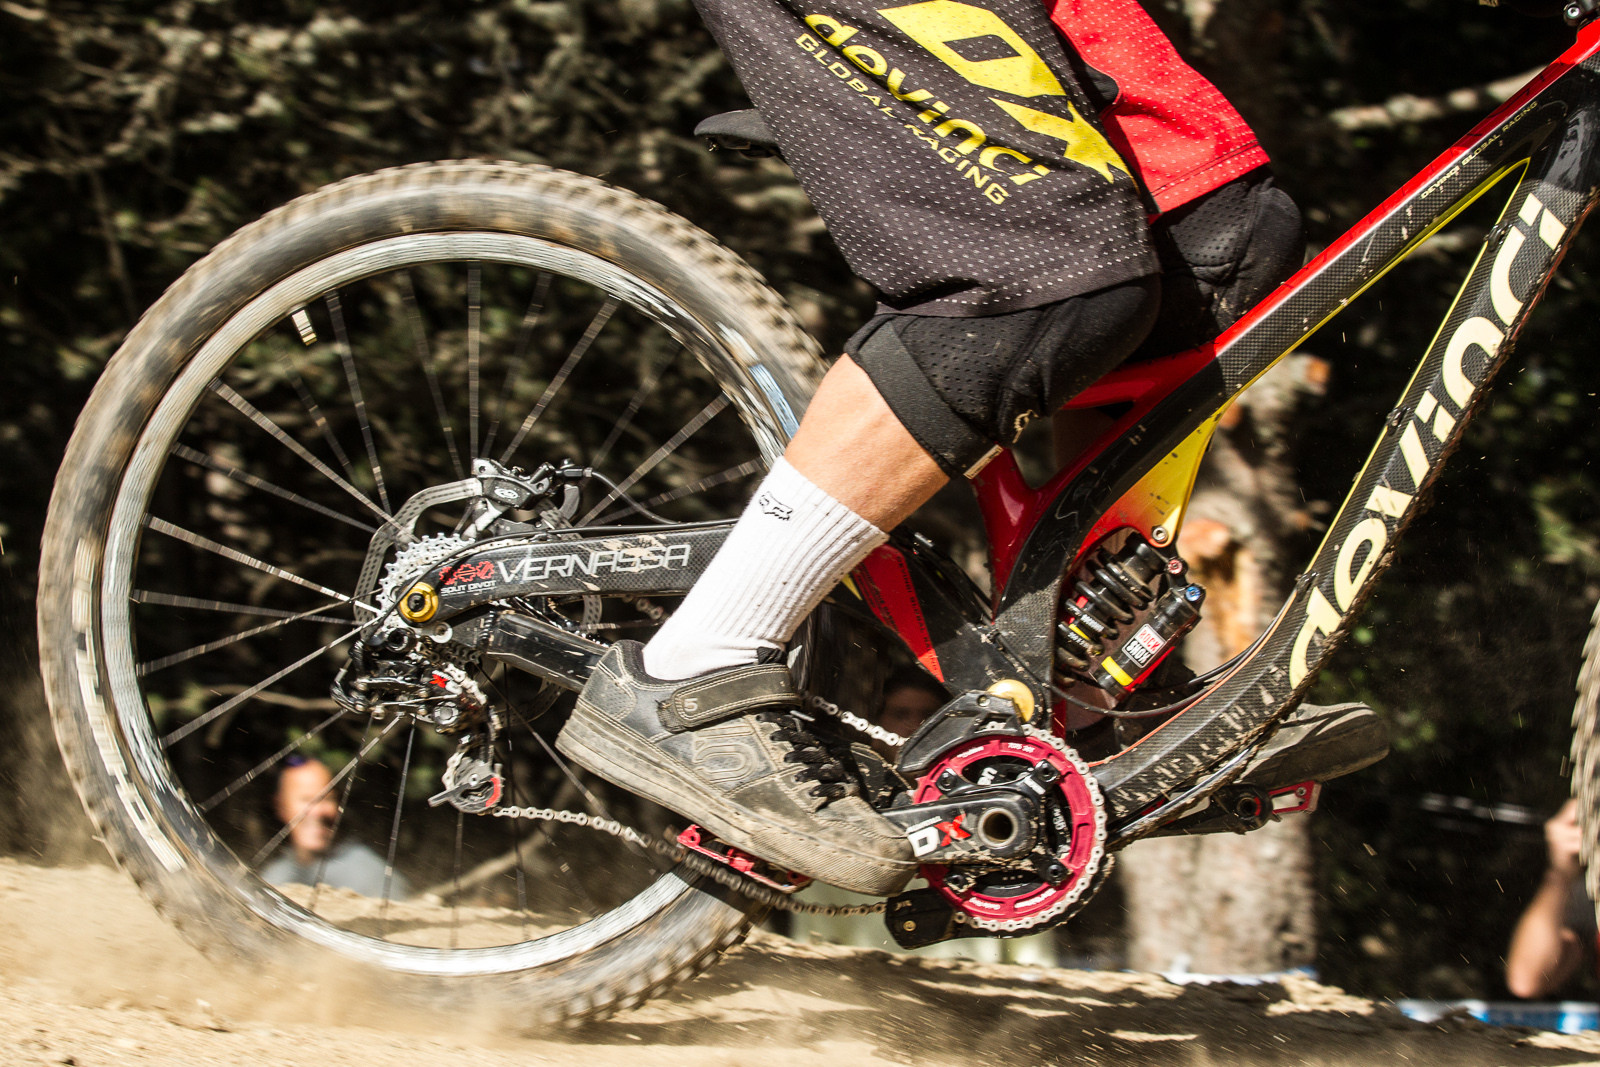 Devinci Wilson G-Out at Andorra World Cup - G-Out Project: 2013 Andorra World Cup - Mountain Biking Pictures - Vital MTB